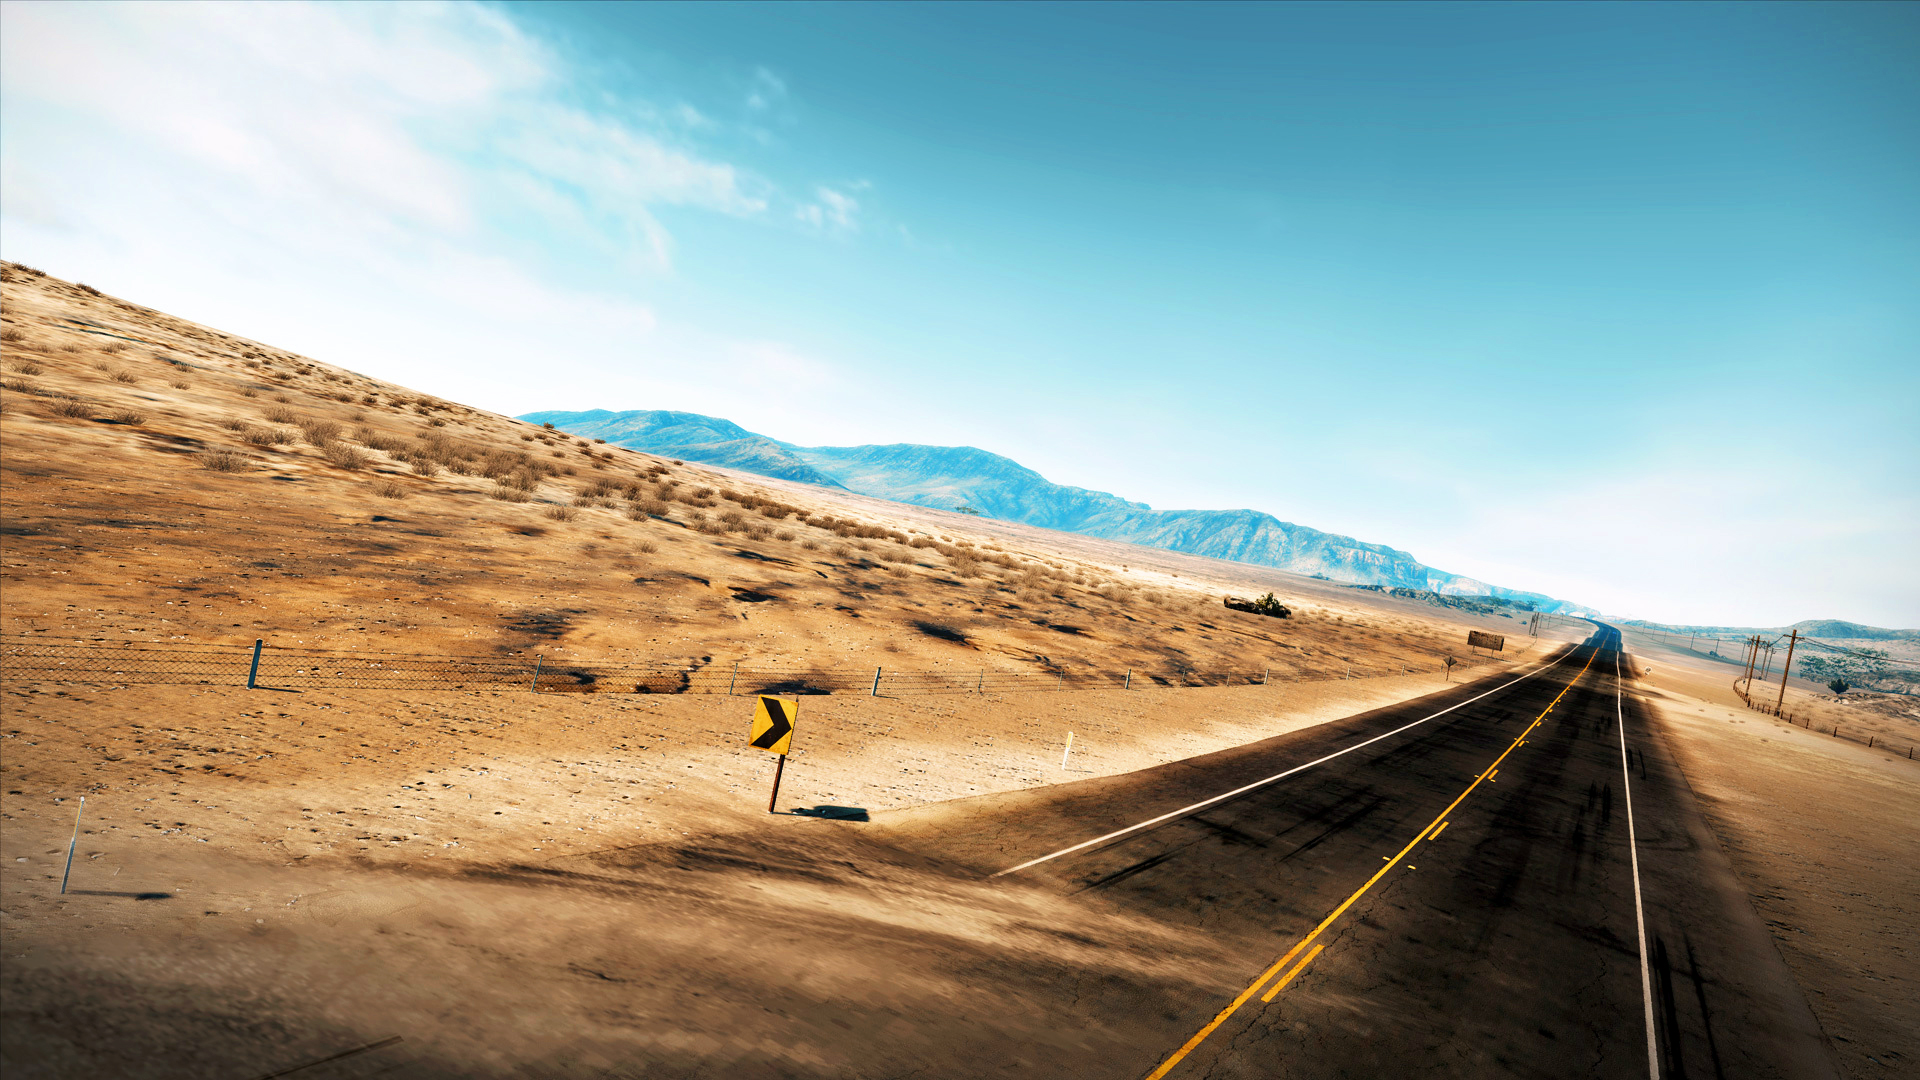 ... collection of top 10 Desert Road Wallpapers. These wallpapers are high definition and available in wide range of sizes and resolutions.